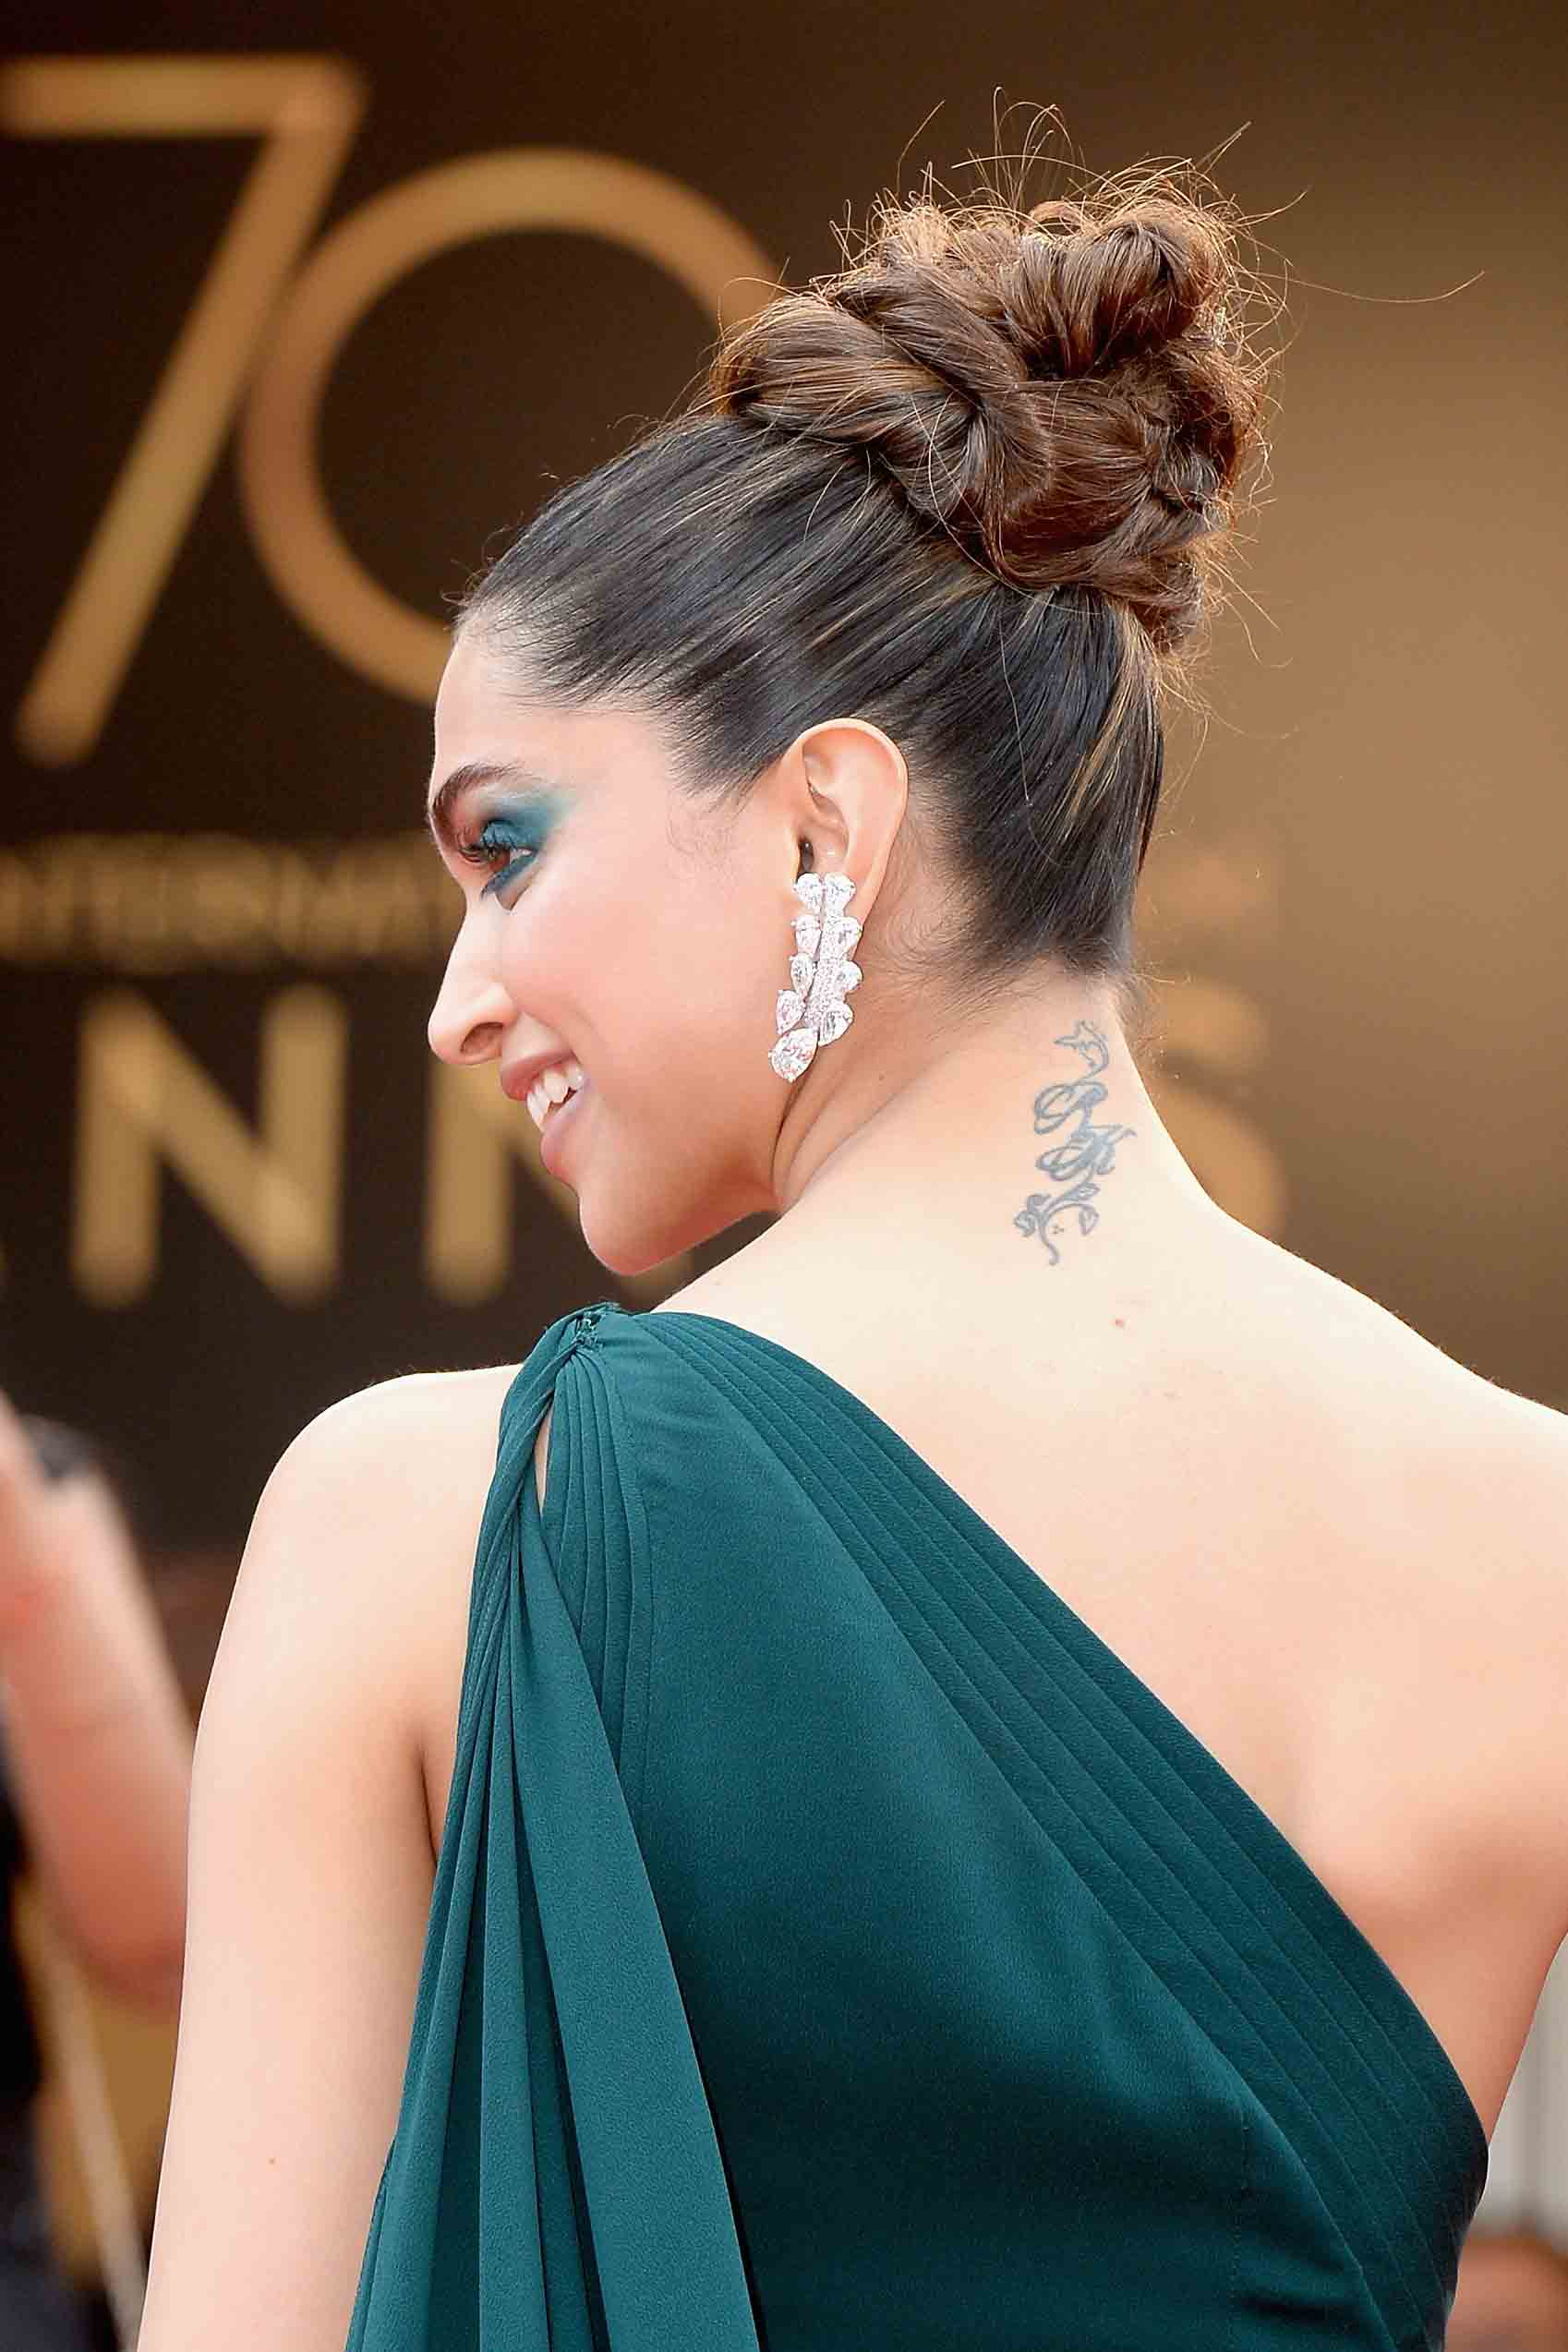 Deepika Padukone Birthday: Bollywood Film Actress Deepika ...